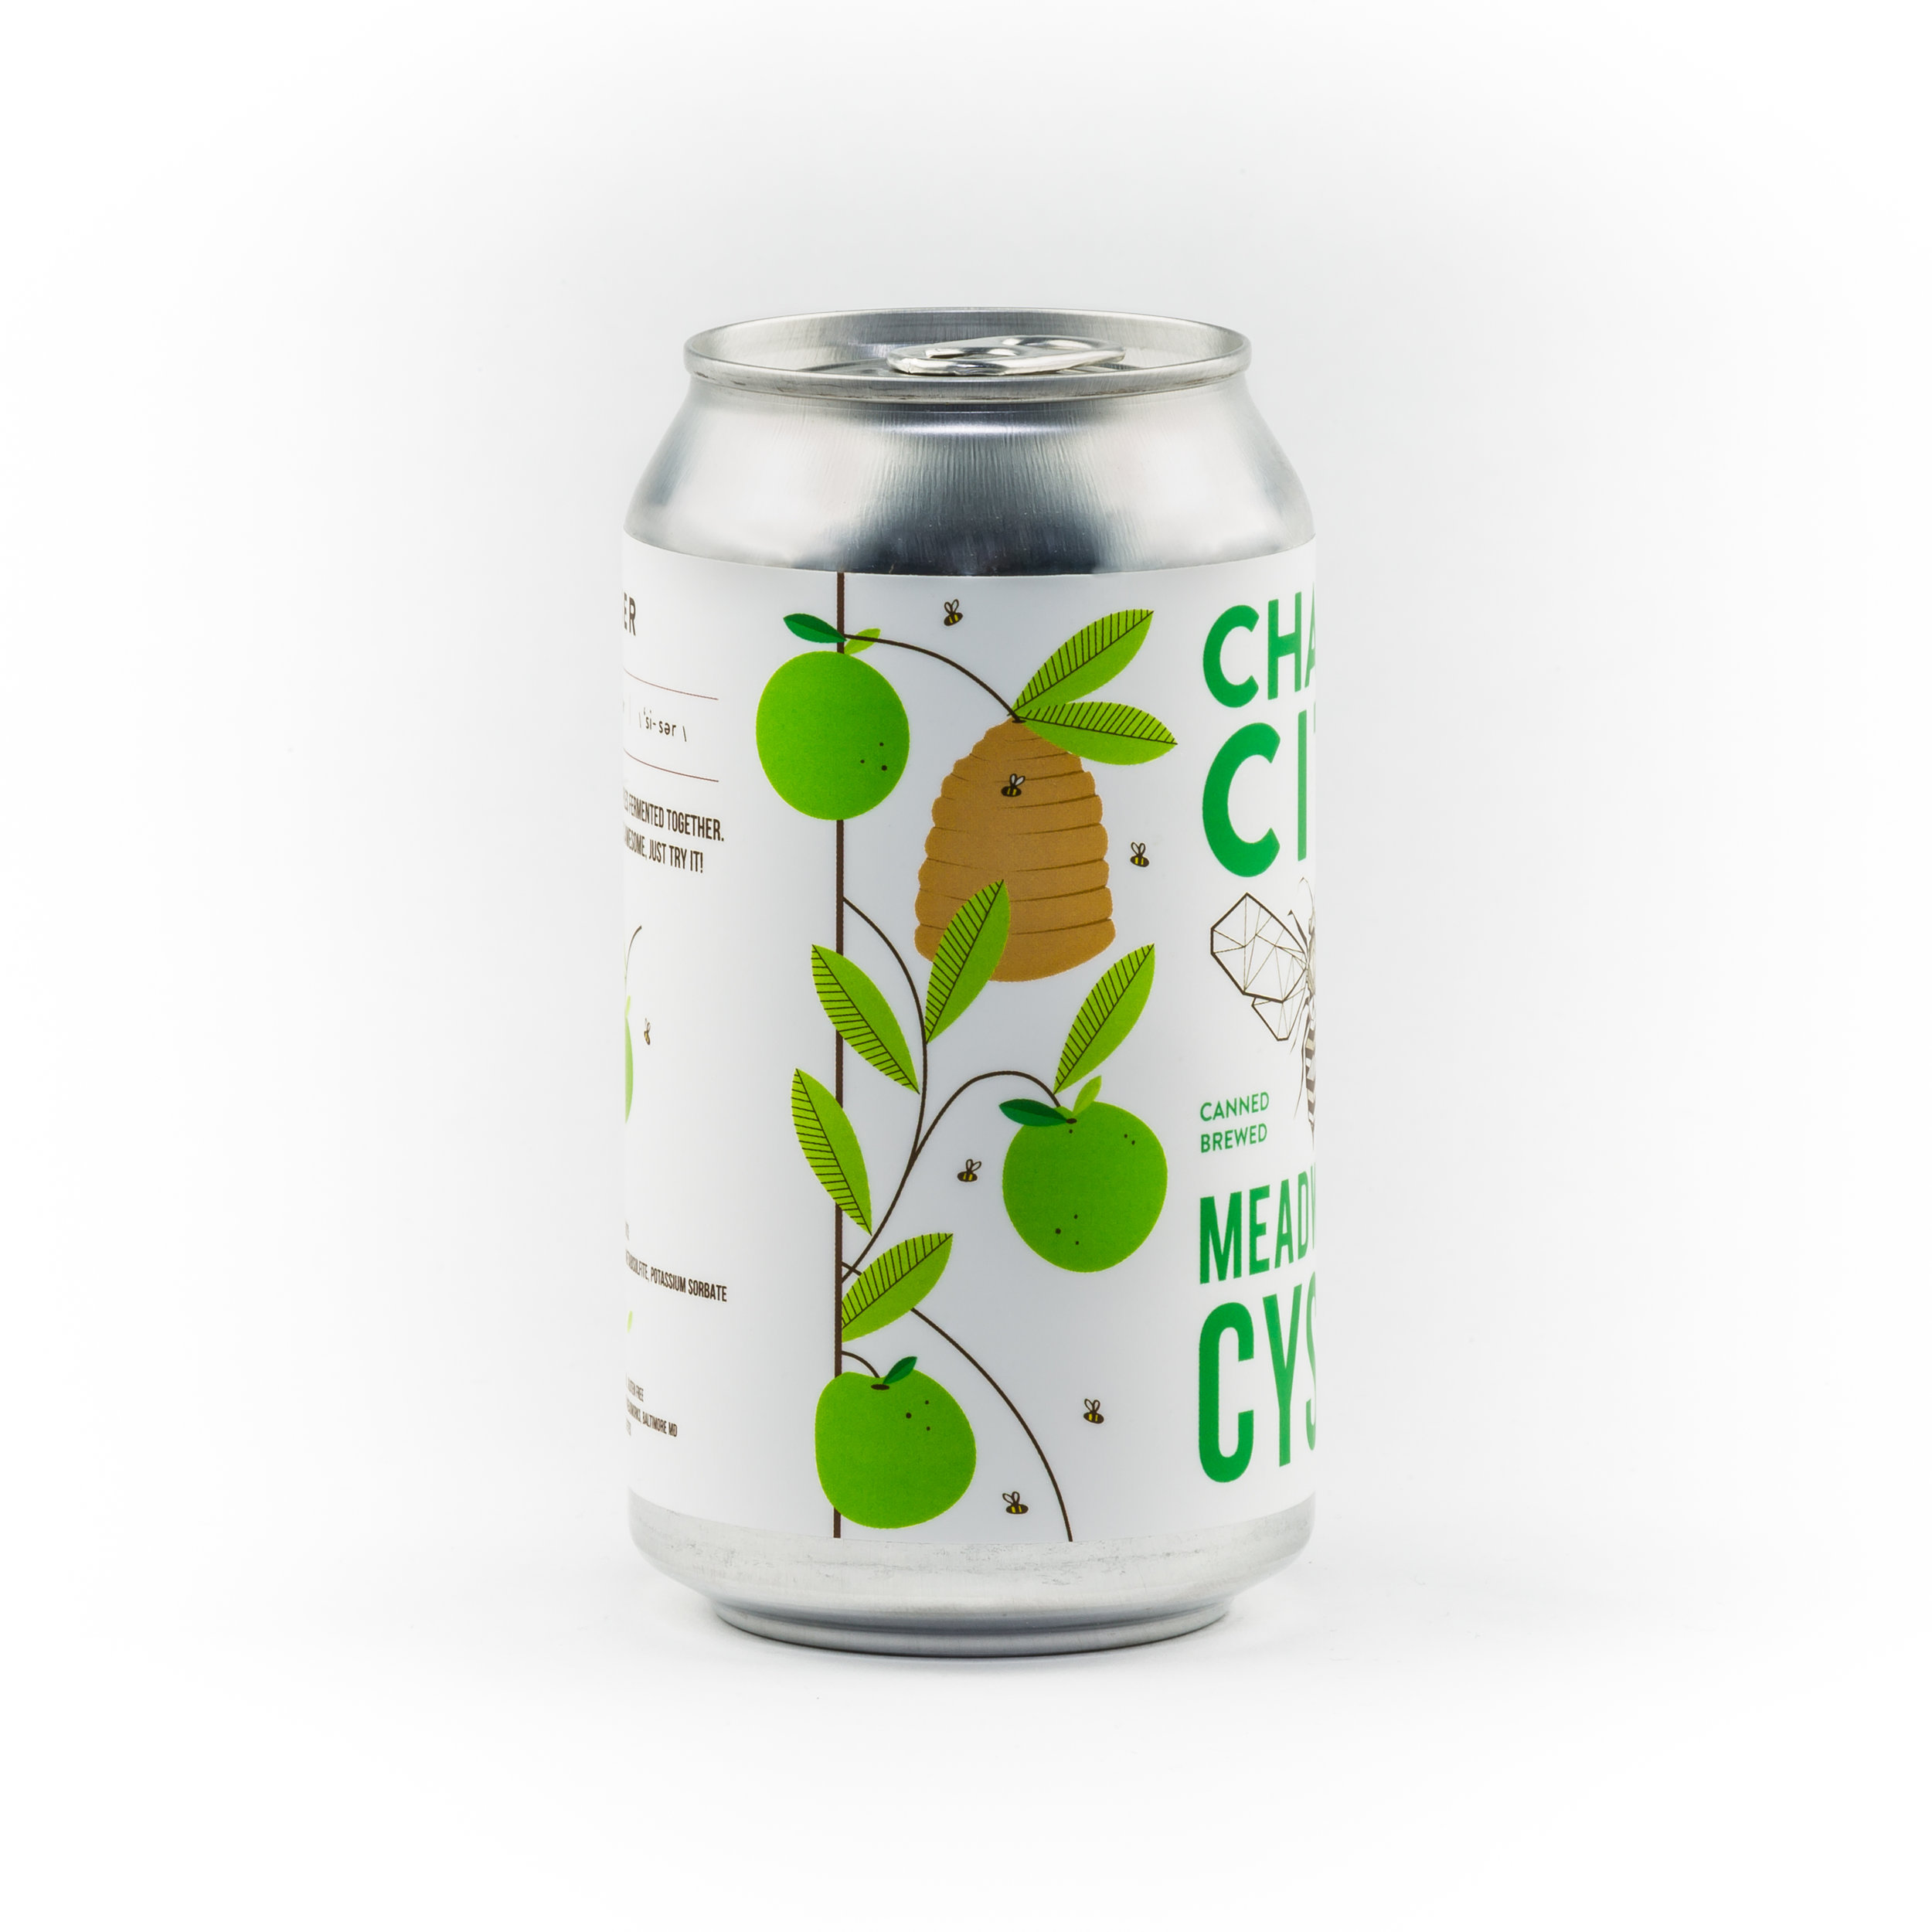 Cyser Sparkling Canned Draft Mead